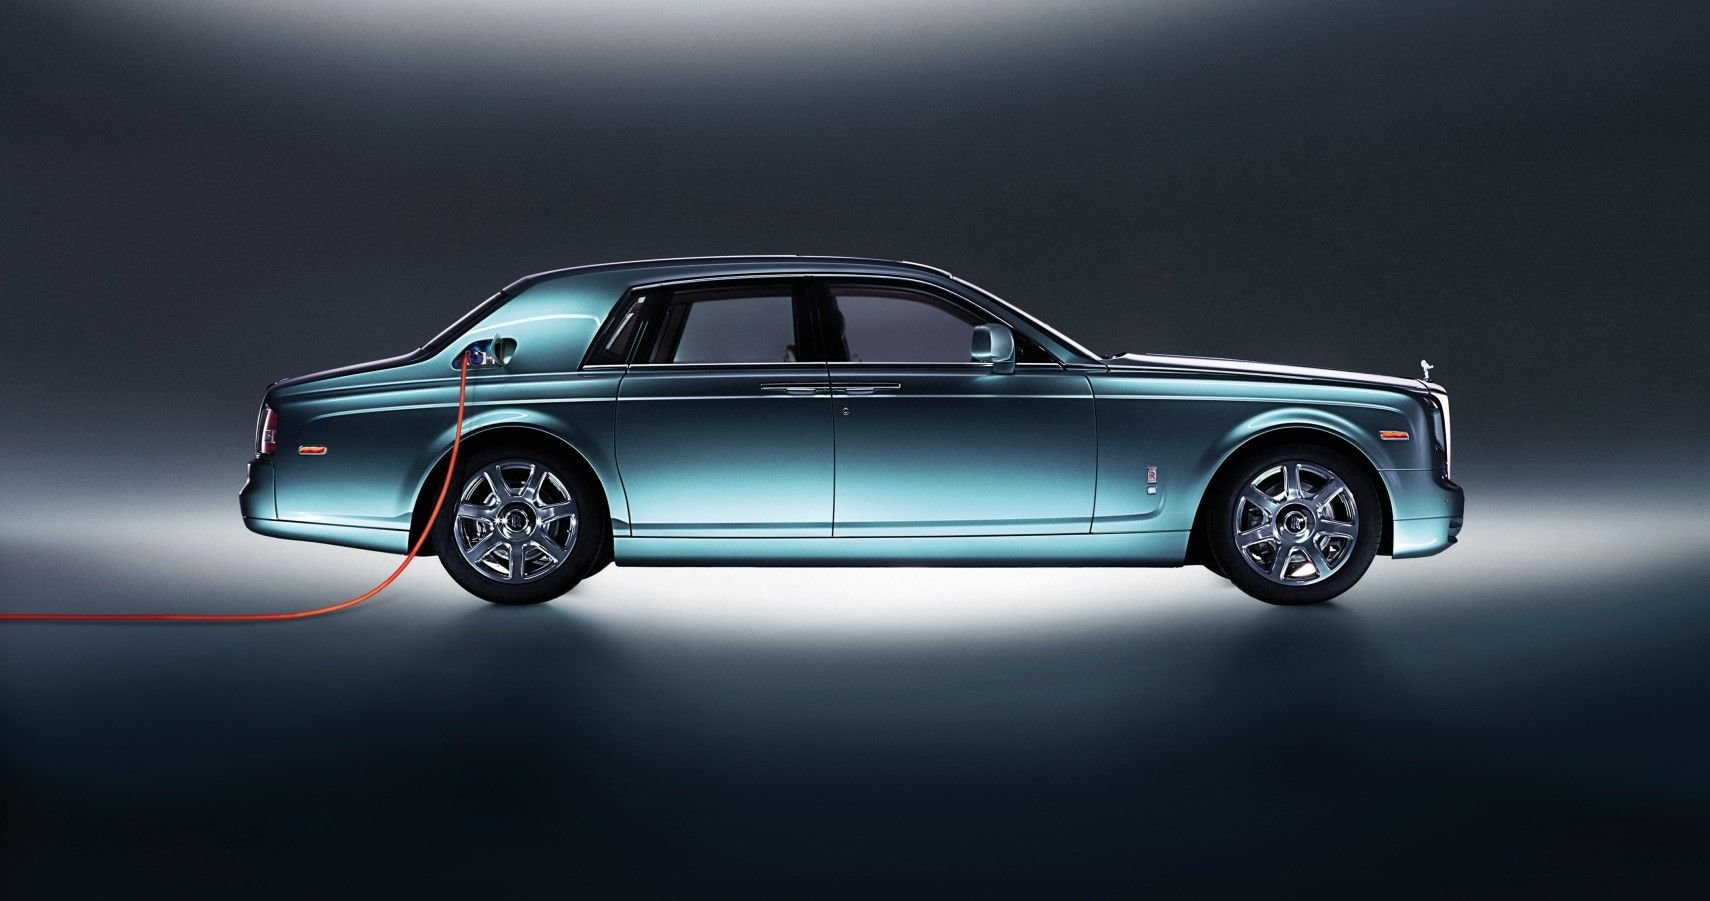 The 2023 Rolls-Royce Silent Shadow Will Be The Most Extravagant EV